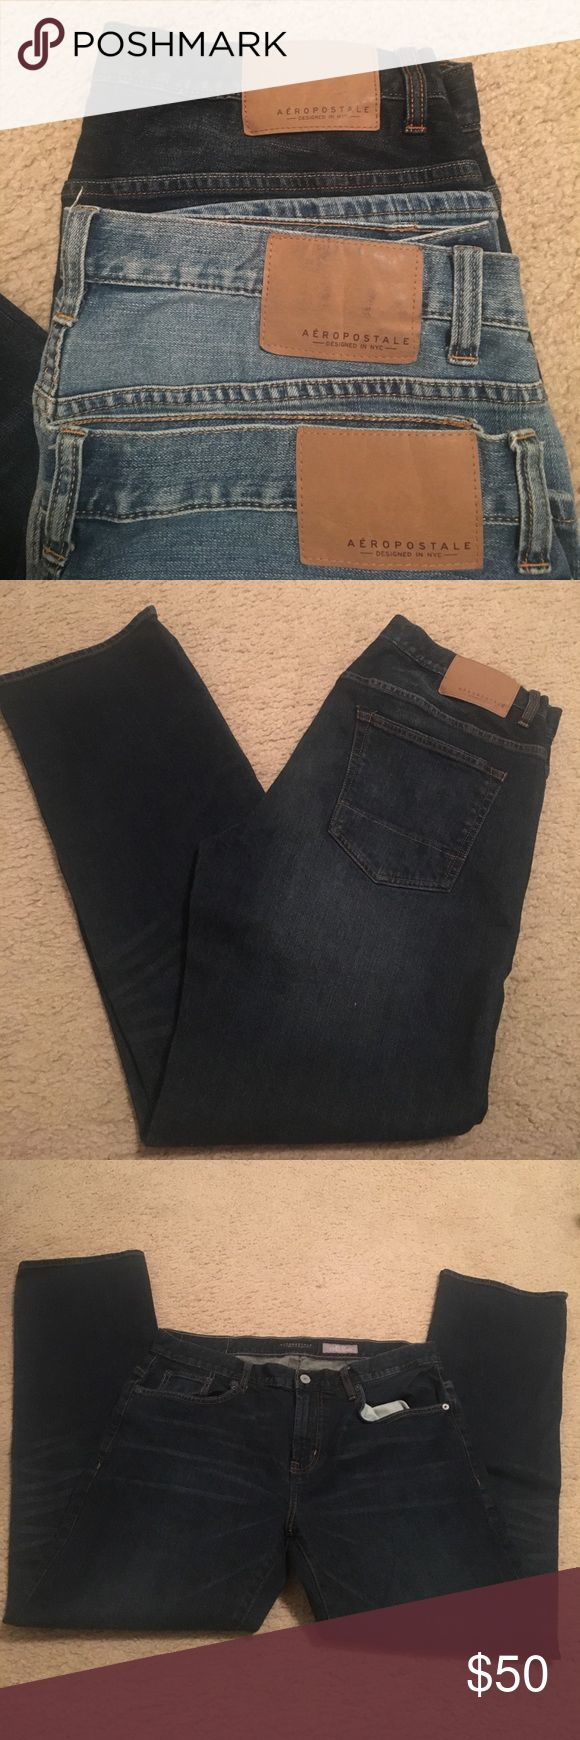 Aeropostale Slim Straight Men's Jeans Aeropostale Designed in NYC Slim Straight Men's Jeans for sale! These are my son's but bought them too long. They measure 34/32. Selling all three together. All in great condition, only wore several times. Bought all for $90, selling for $50. Denim Jeans, definitely comfortable and versatile!🌵👖👨🏻 Comes from a smoke free home:) Aeropostale Jeans Straight Leg